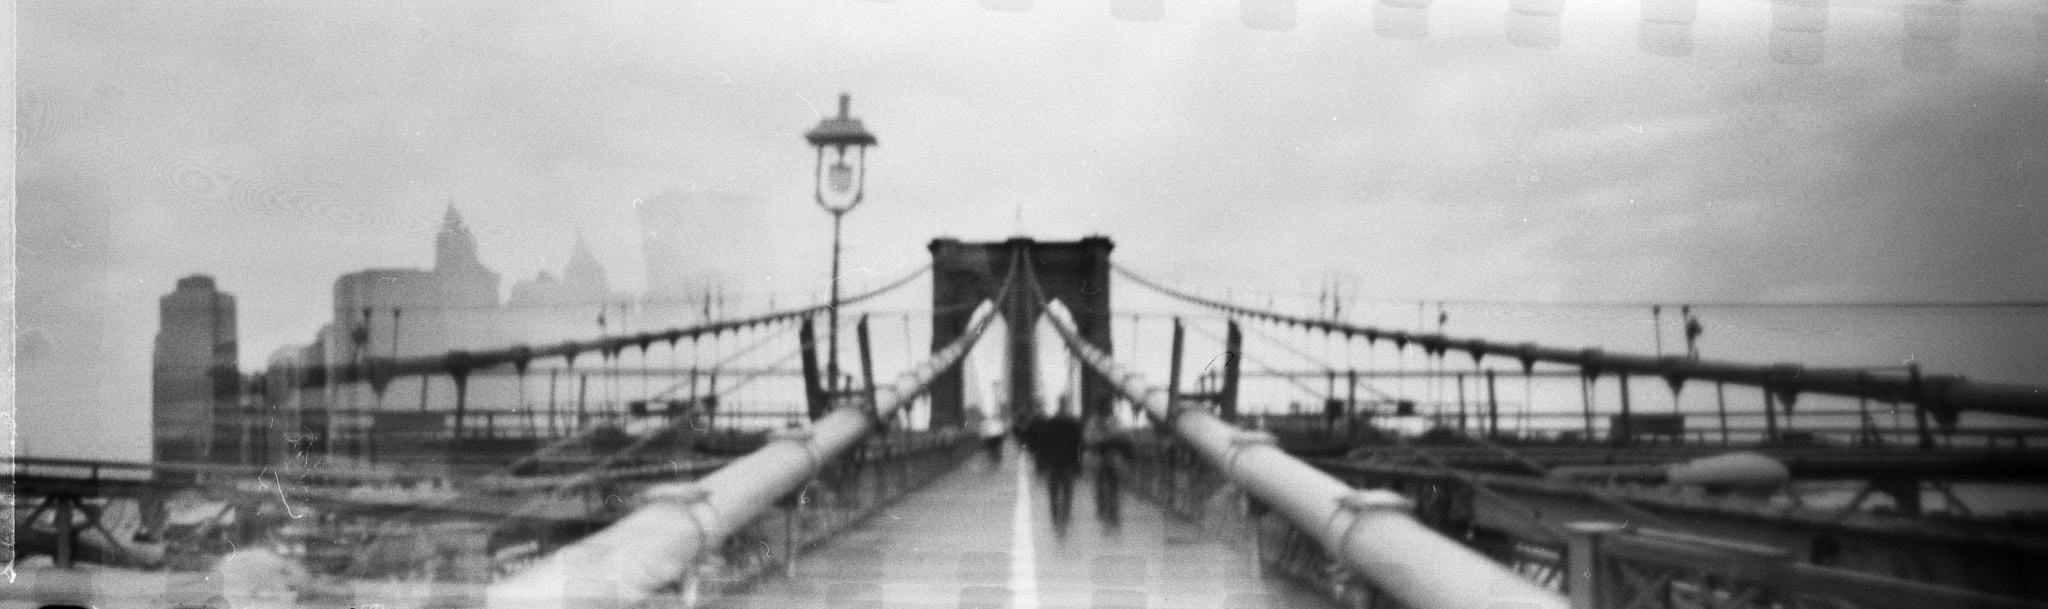 Photograph Pinhole NYC by Lee Shelly on 500px